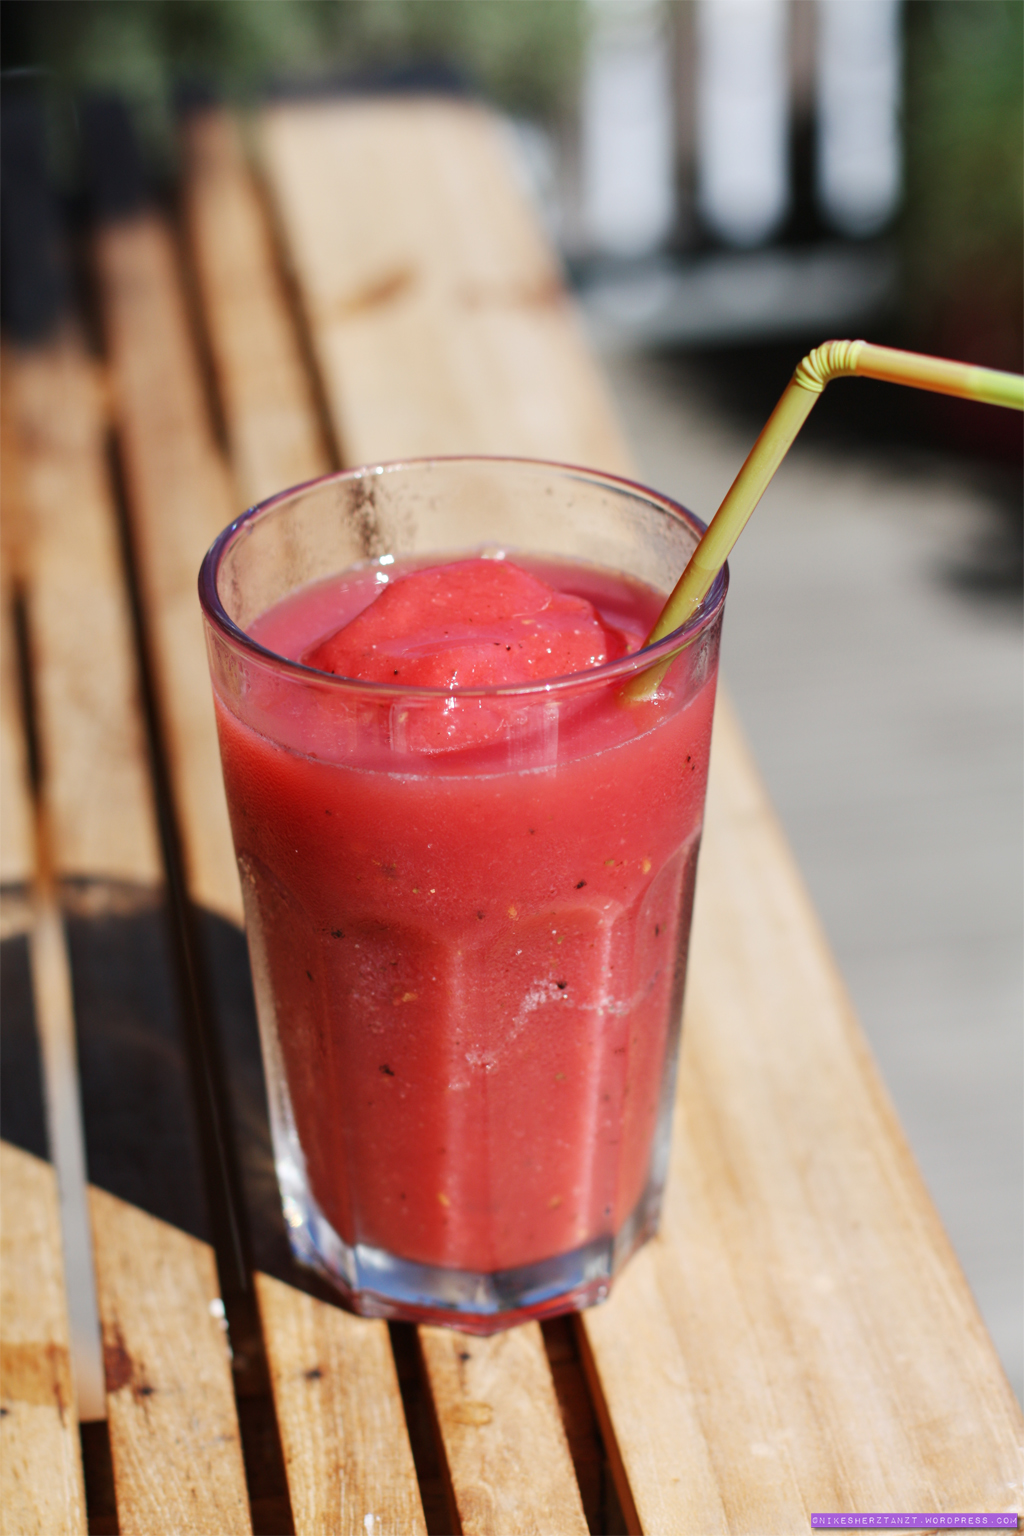 agua fresca, summer in the city, hot in the city, drinks, nikesherztanzt, food, blog